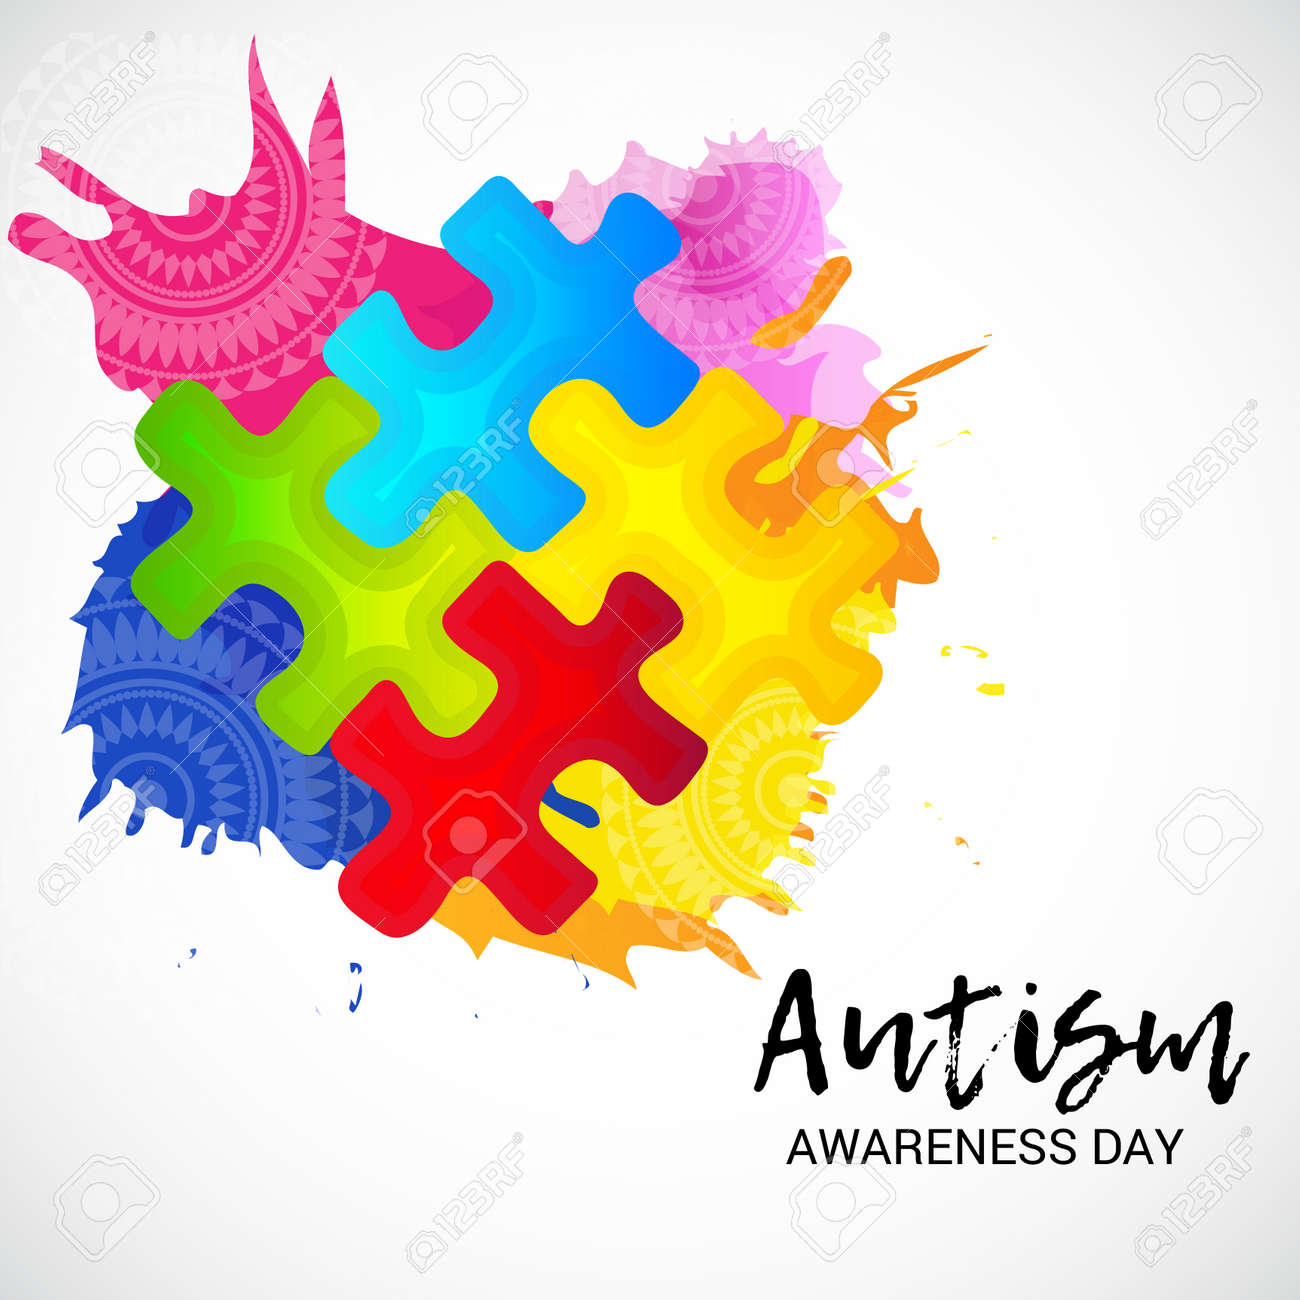 world autism awareness day banner with jigsaw puzzle on white